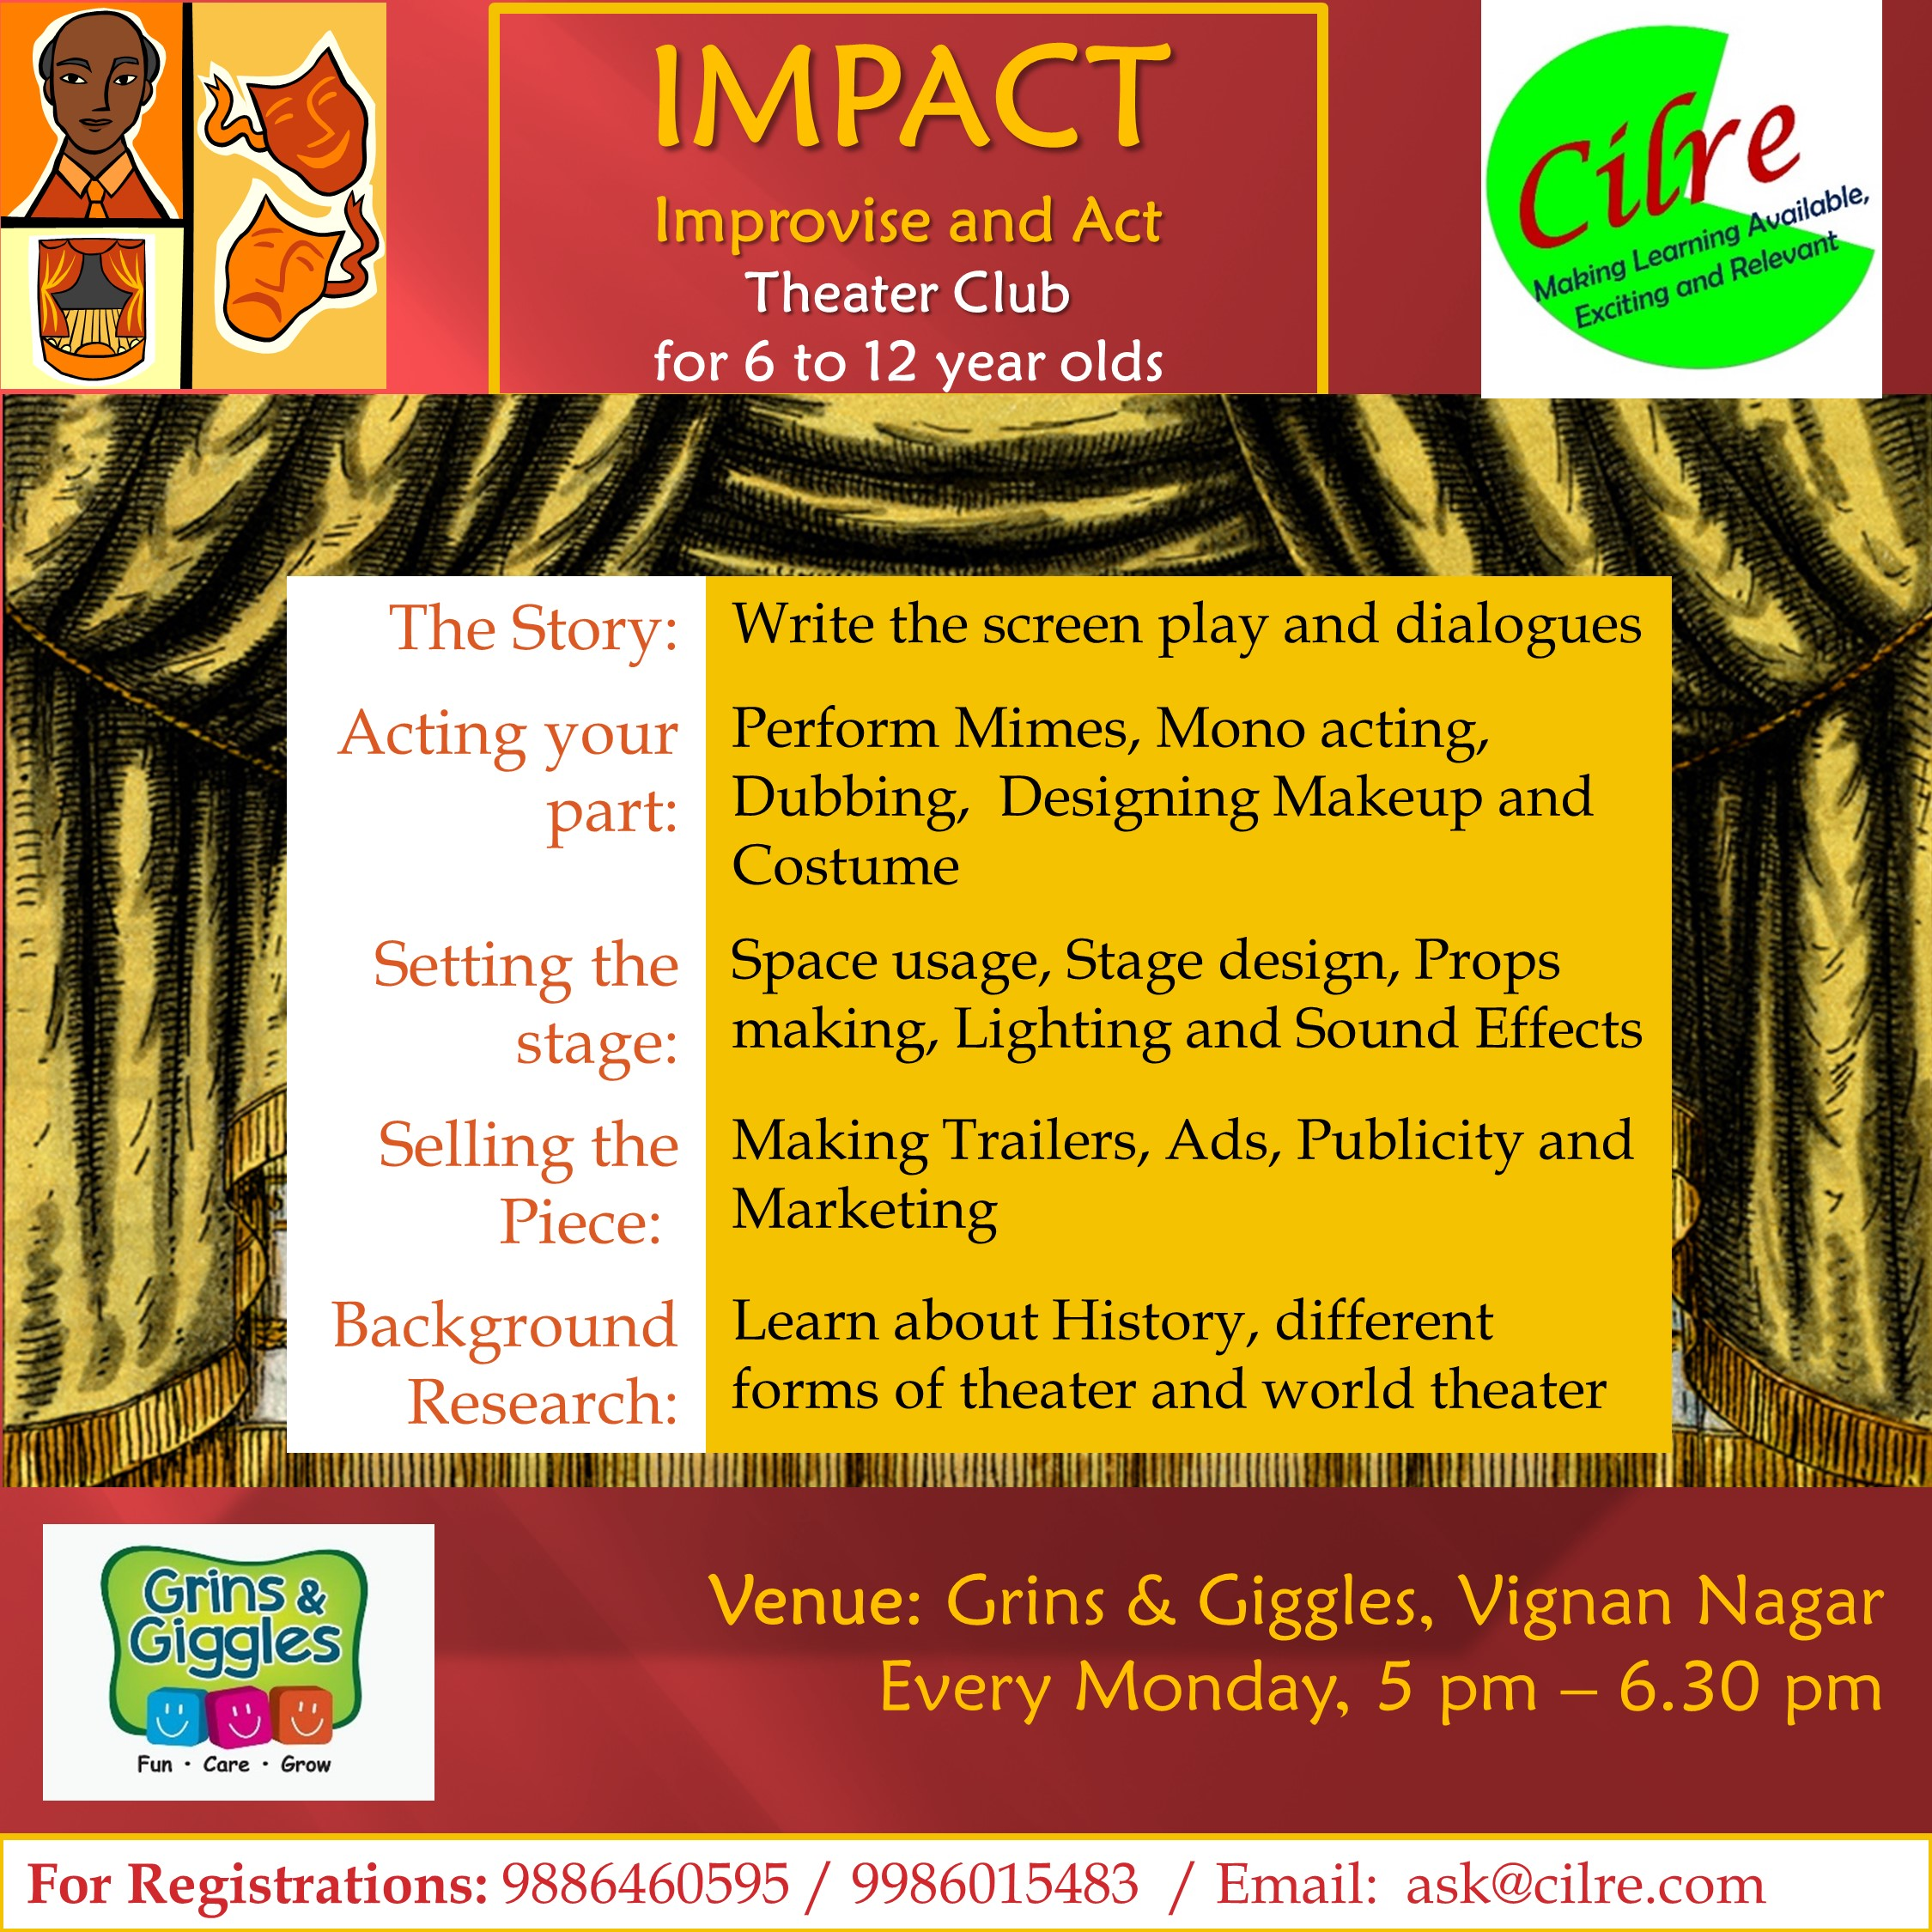 Impact at Grins & Giggles